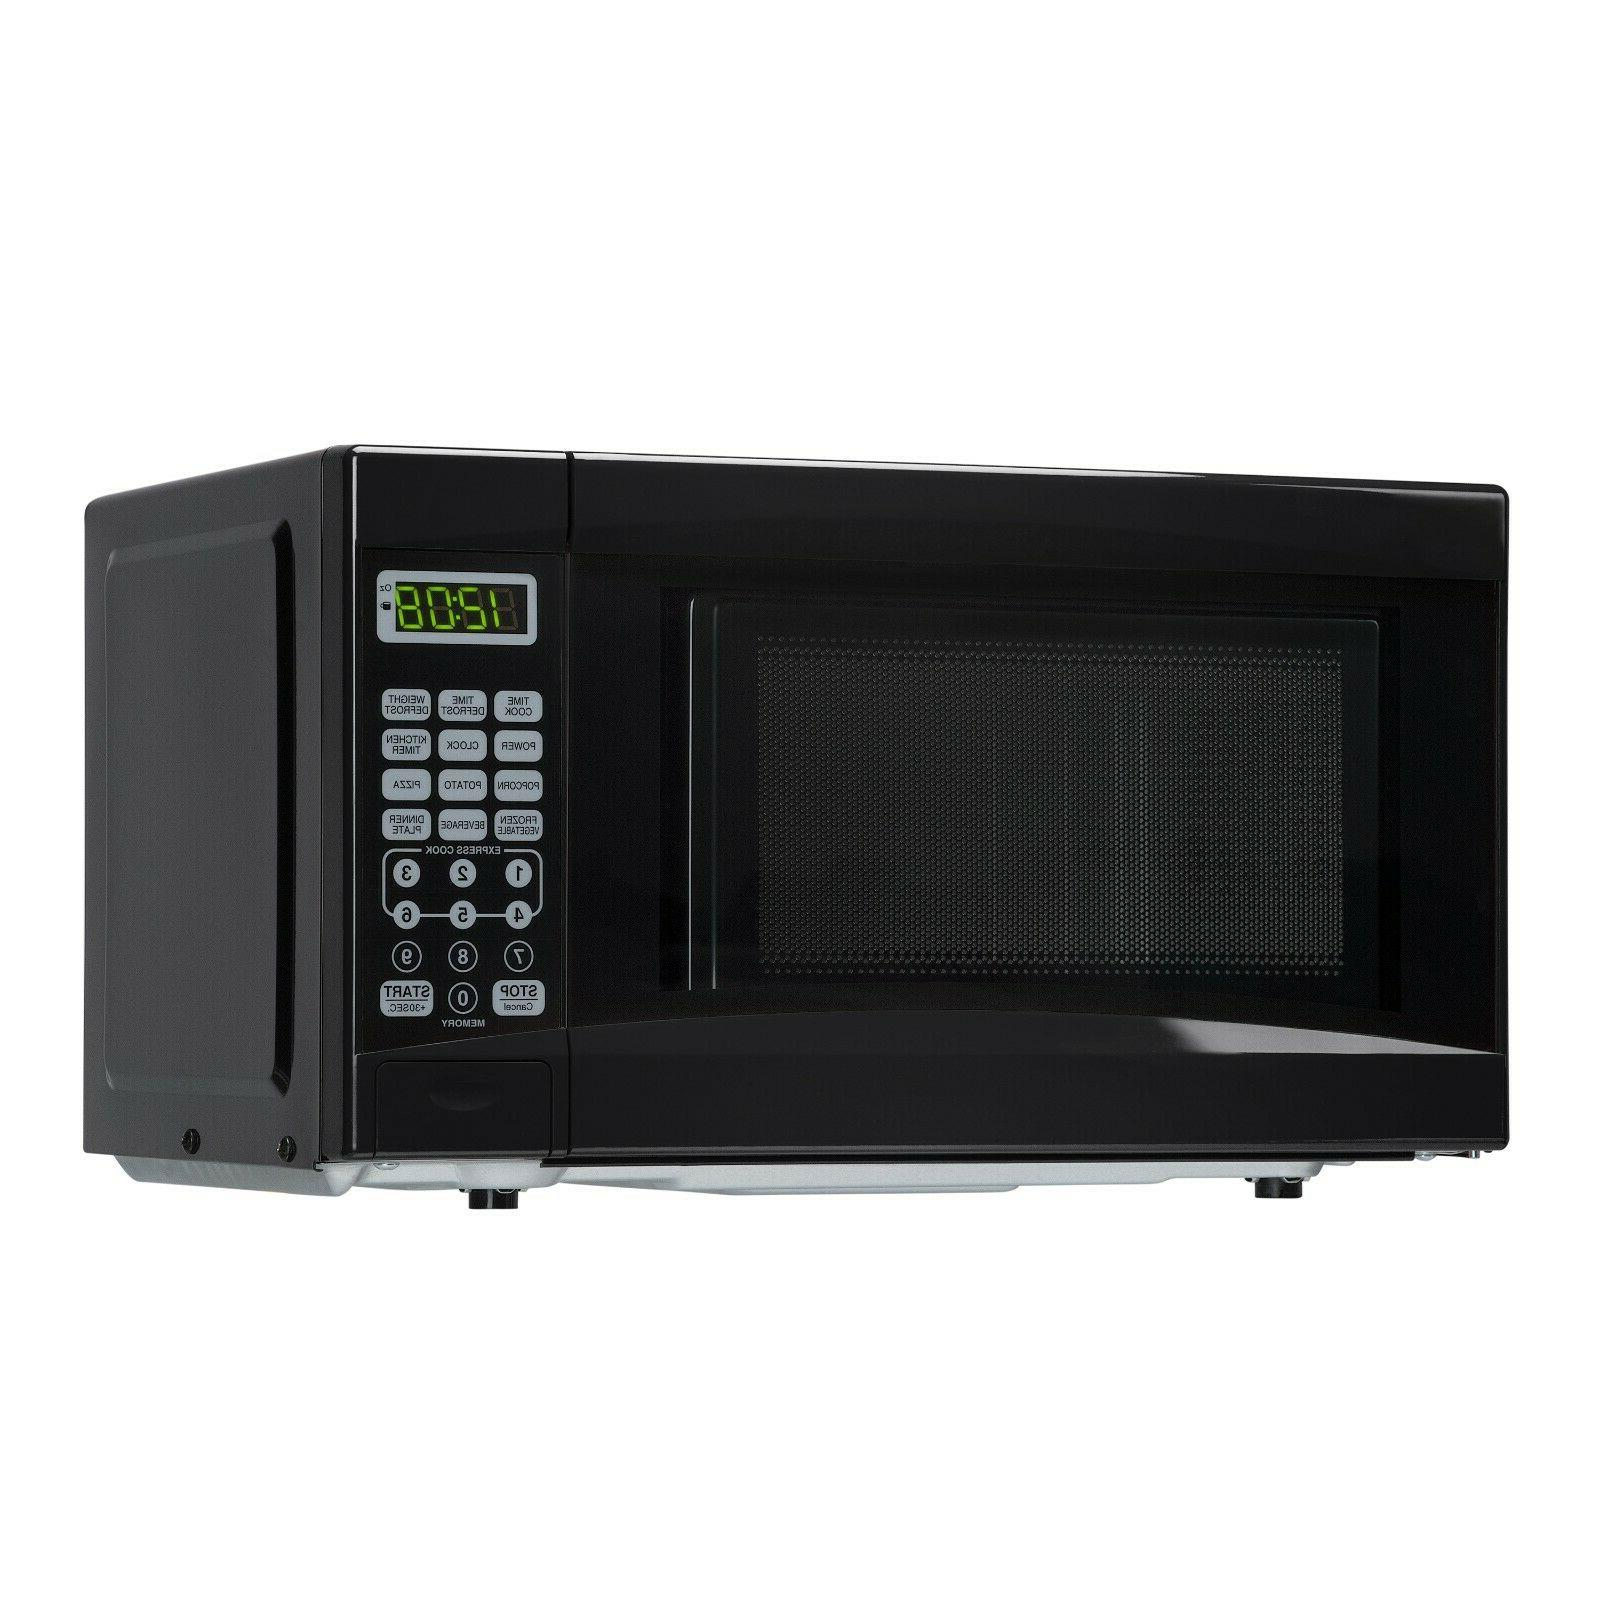 countertop kitchen digital led microwave oven proctor